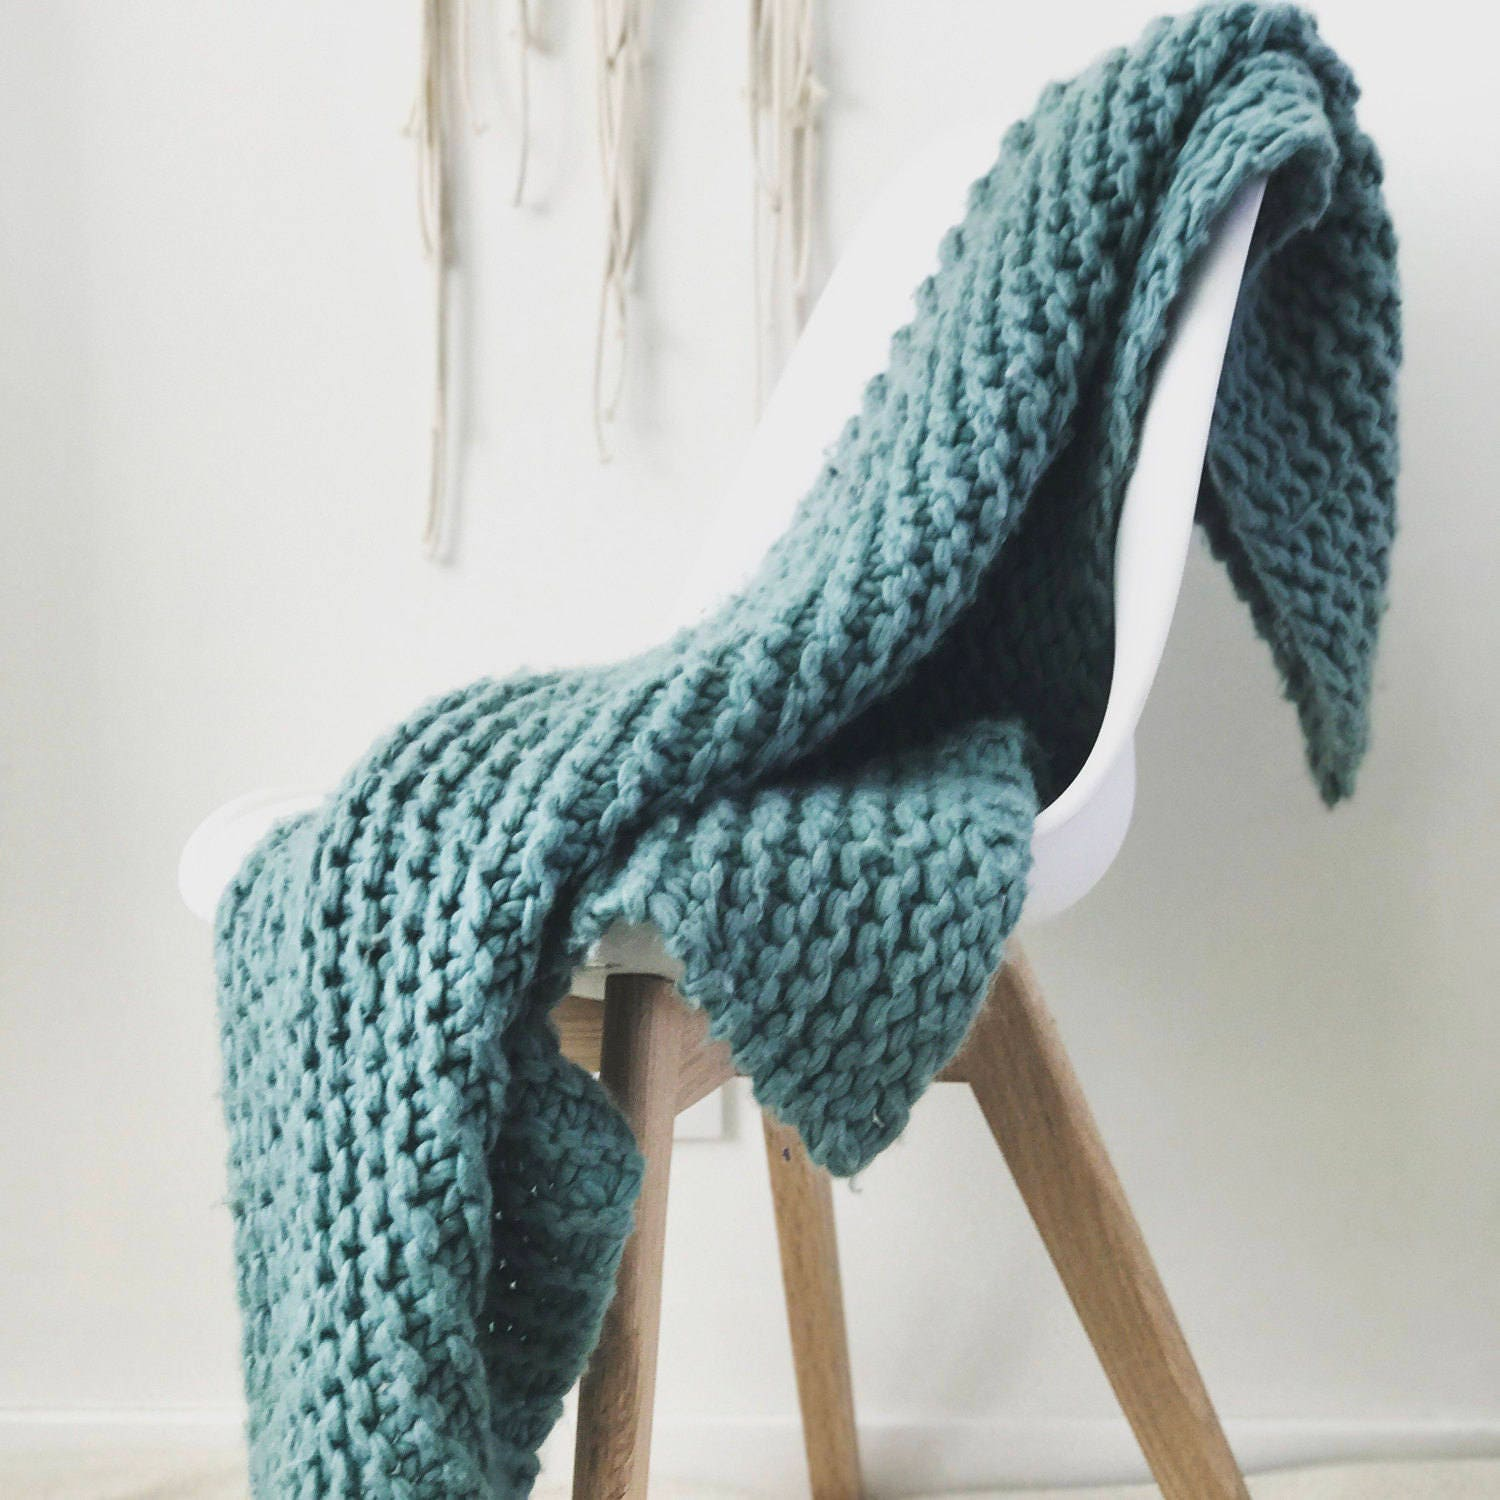 Blanket Knit Kit Super Chunky Diy Giant Throw Blanket